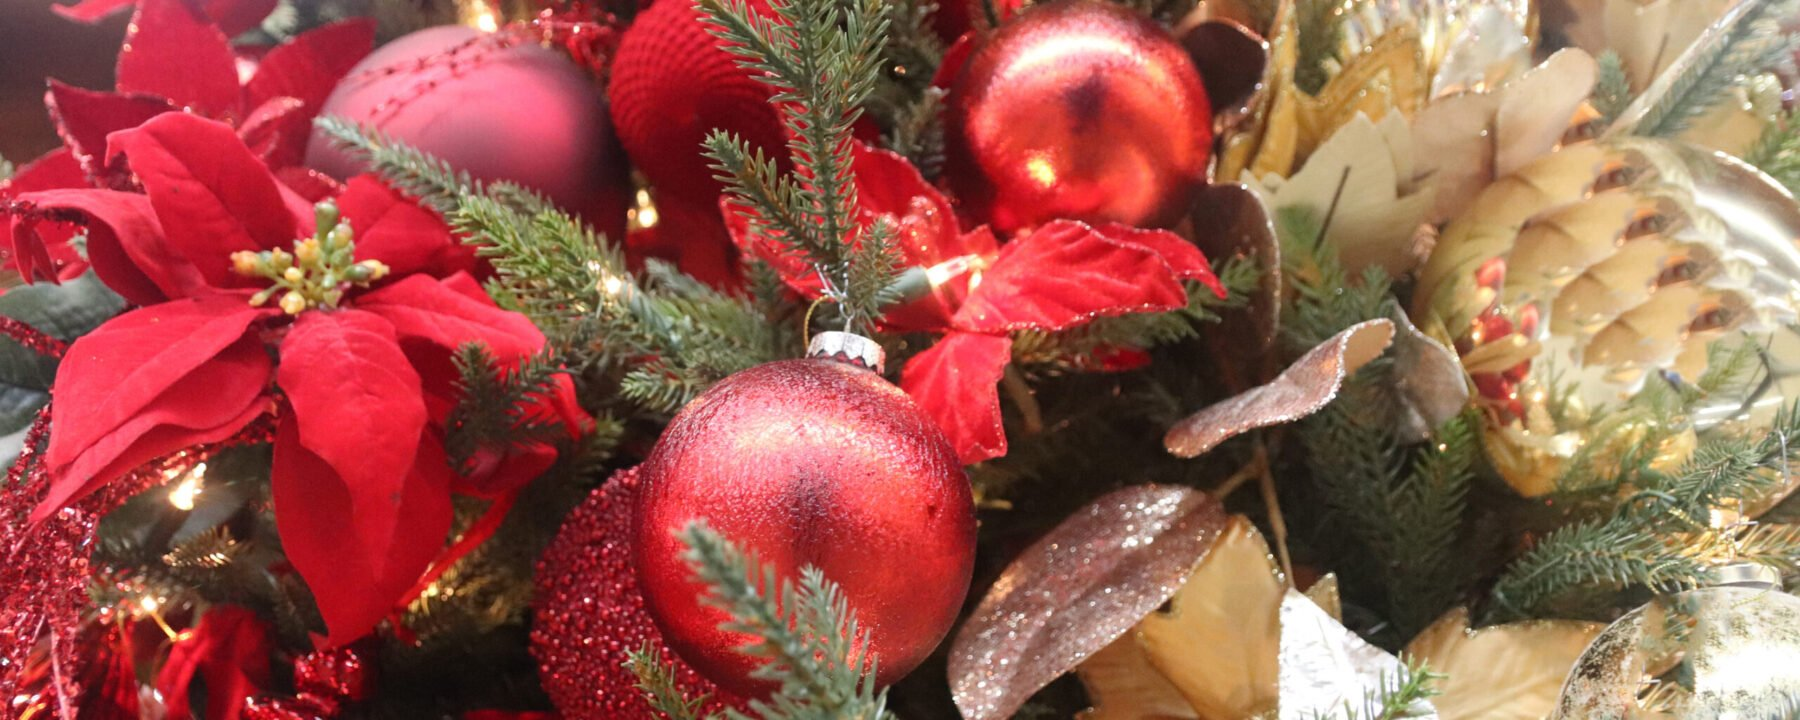 Christmas ornaments from Flowerland